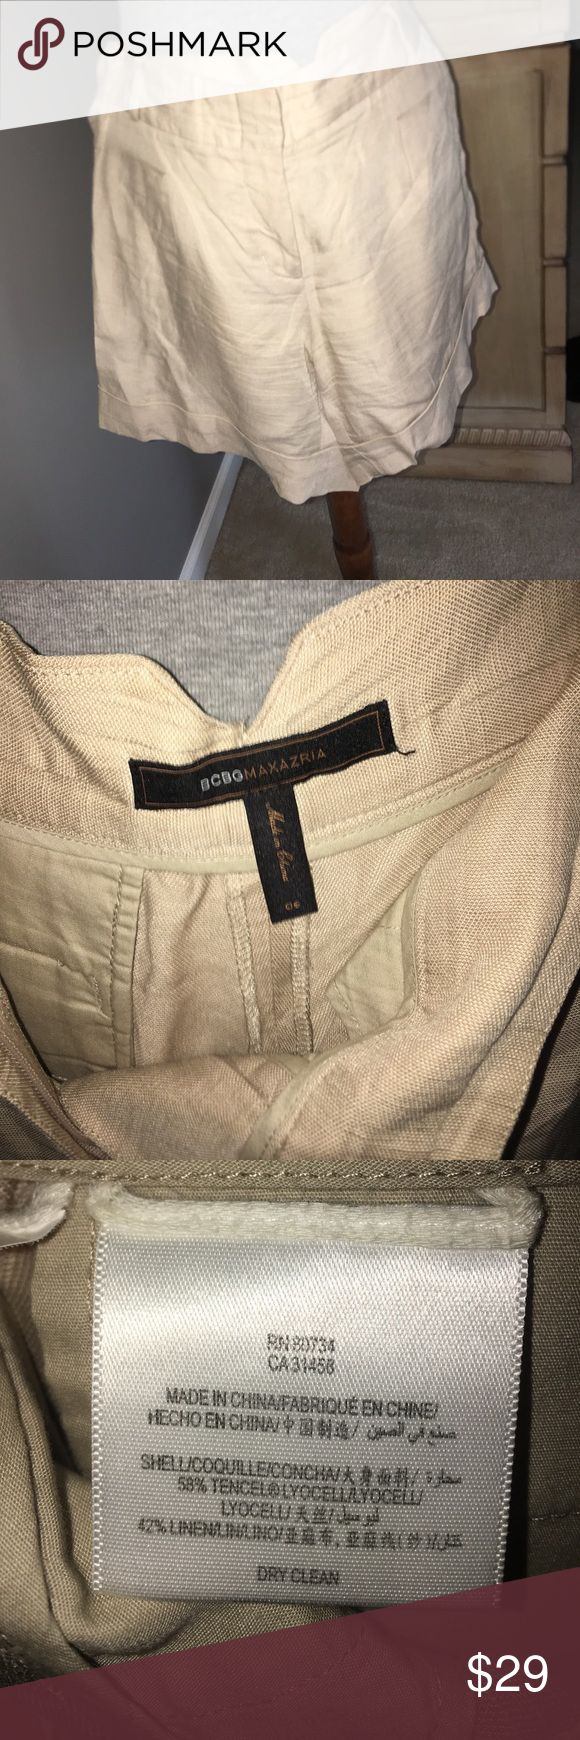 BCBG Linen beige shorts with cuffs. BCBG Linen beige shorts with cuffs, side pockets, one pocket in back, zip front with belt loops, one pleat on each side. BCBGMaxAzria Shorts